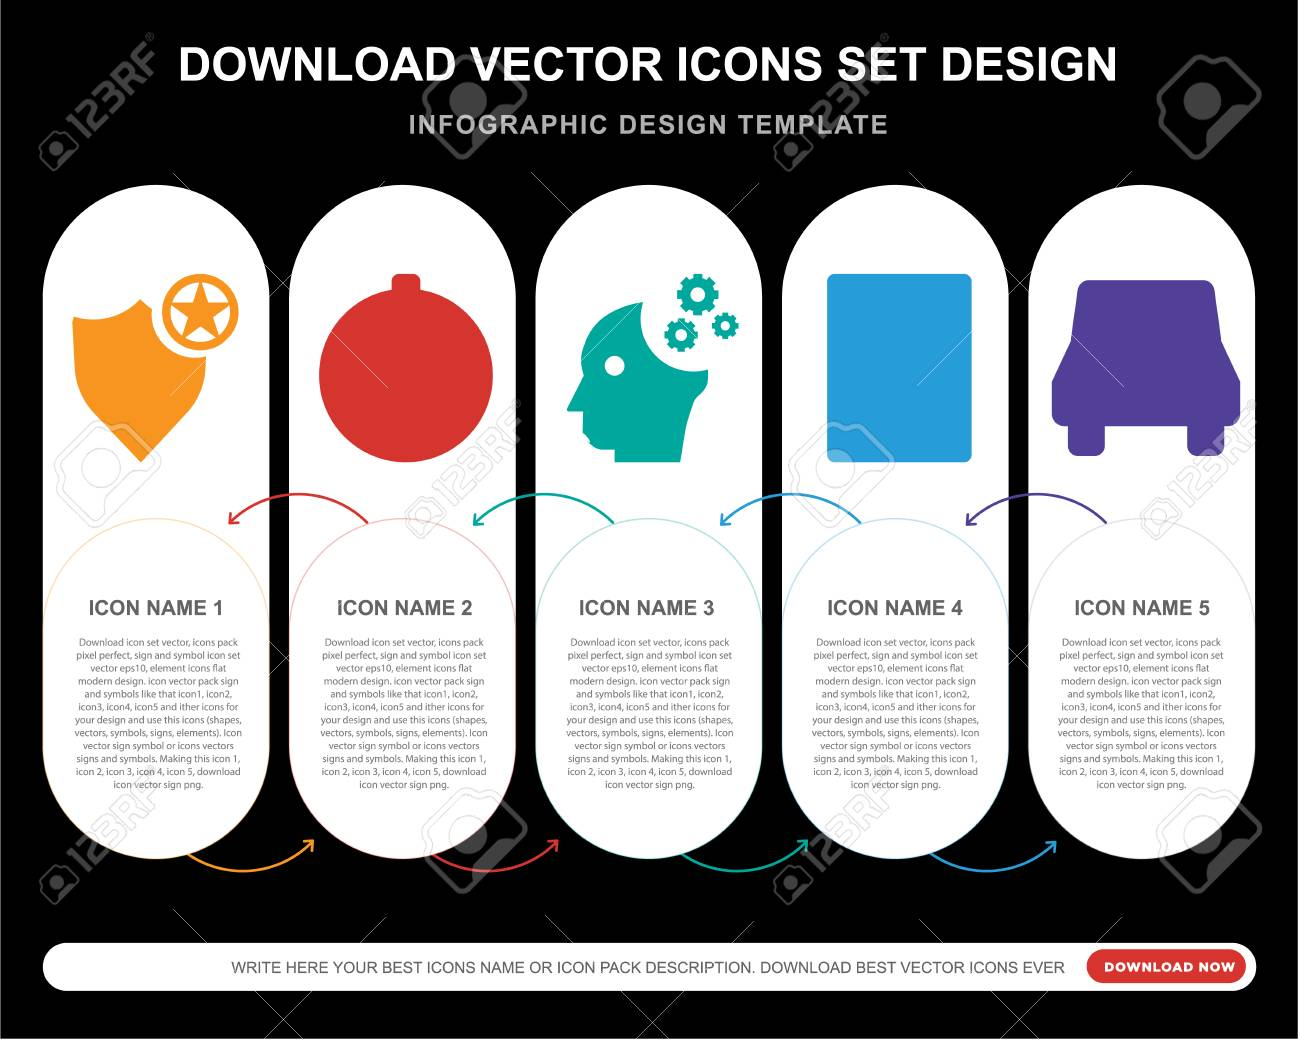 5 vector icons such as Shield, Compass, Mind, Calculator, Car